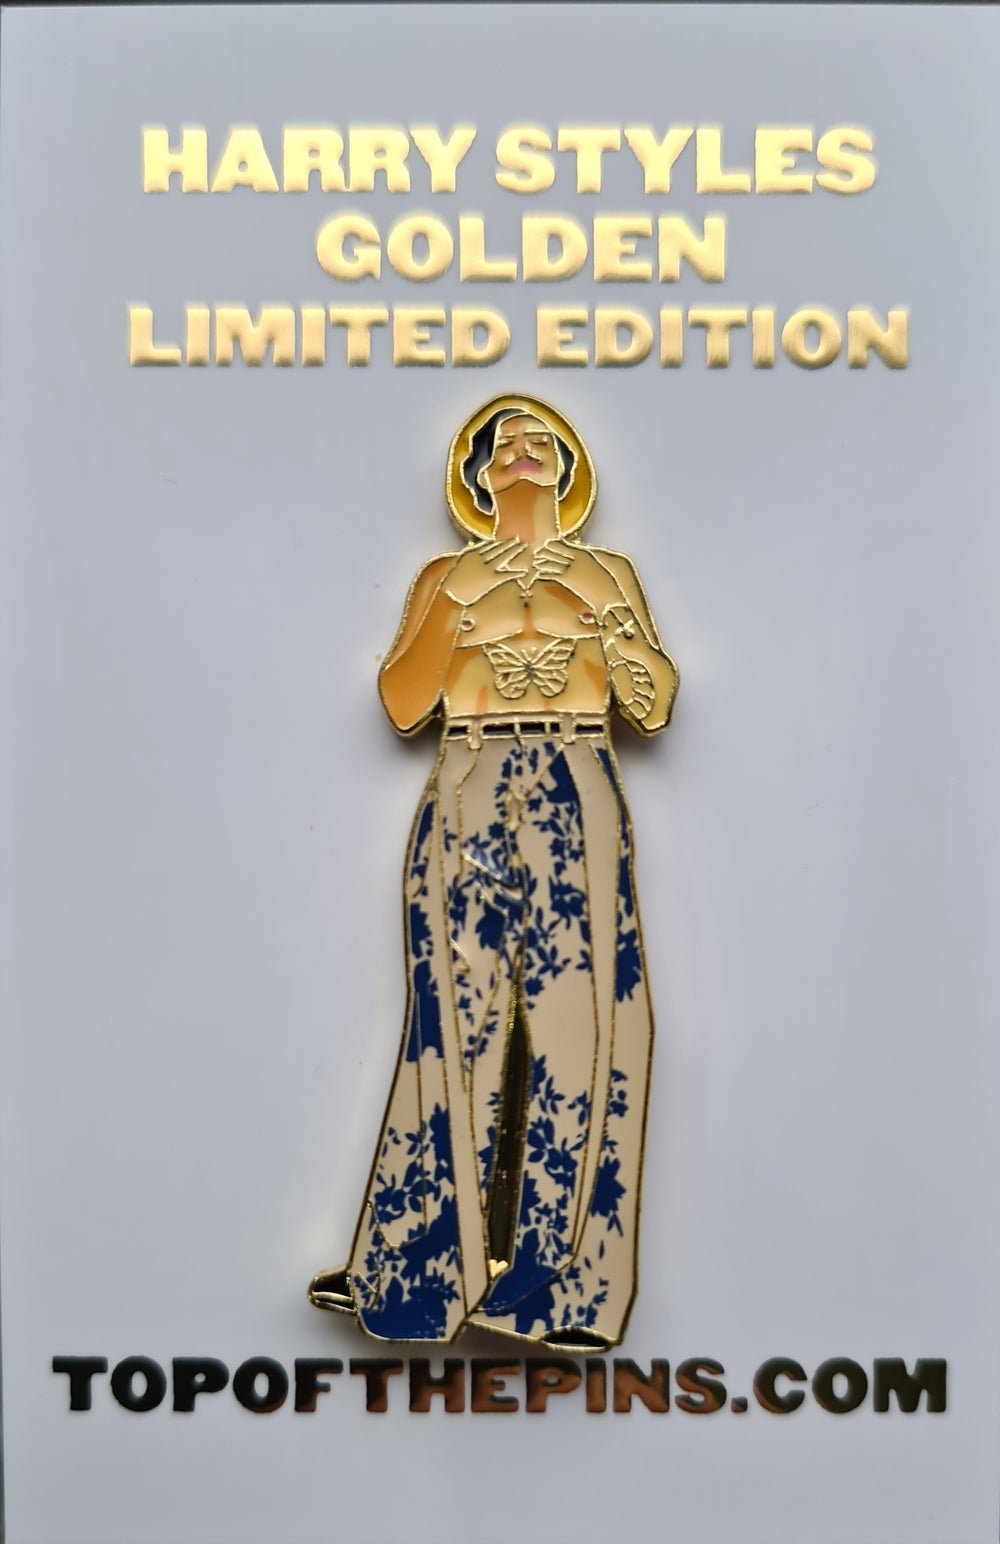 Harry Styles - Golden Limited Edition Pin Badge